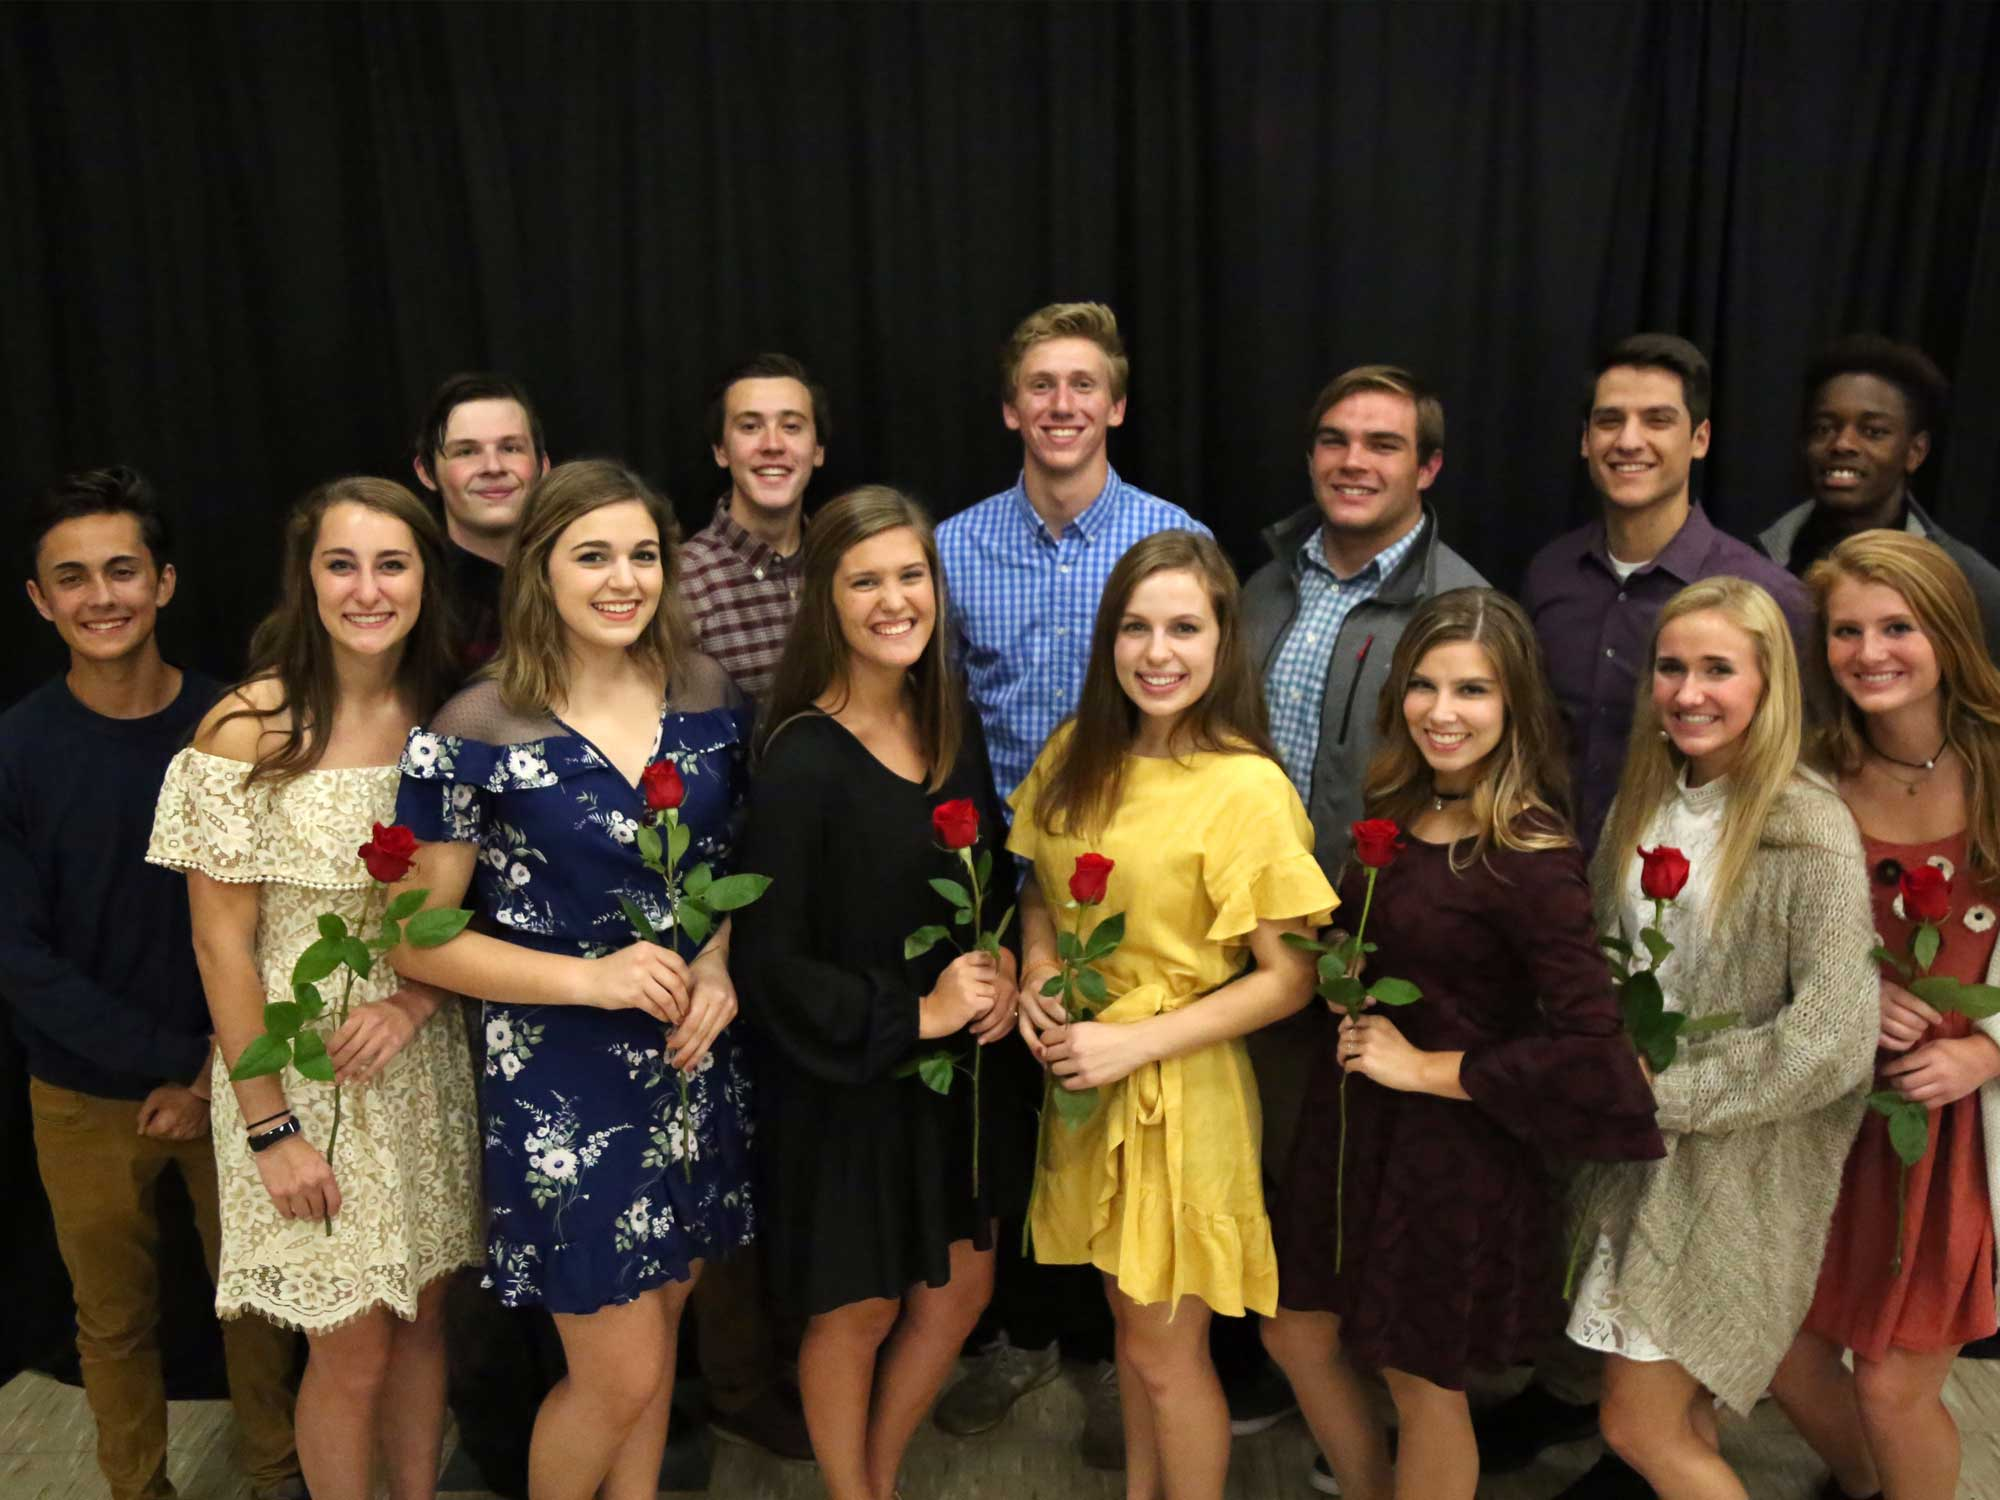 Wheaton Academy Homecoming Court 2018